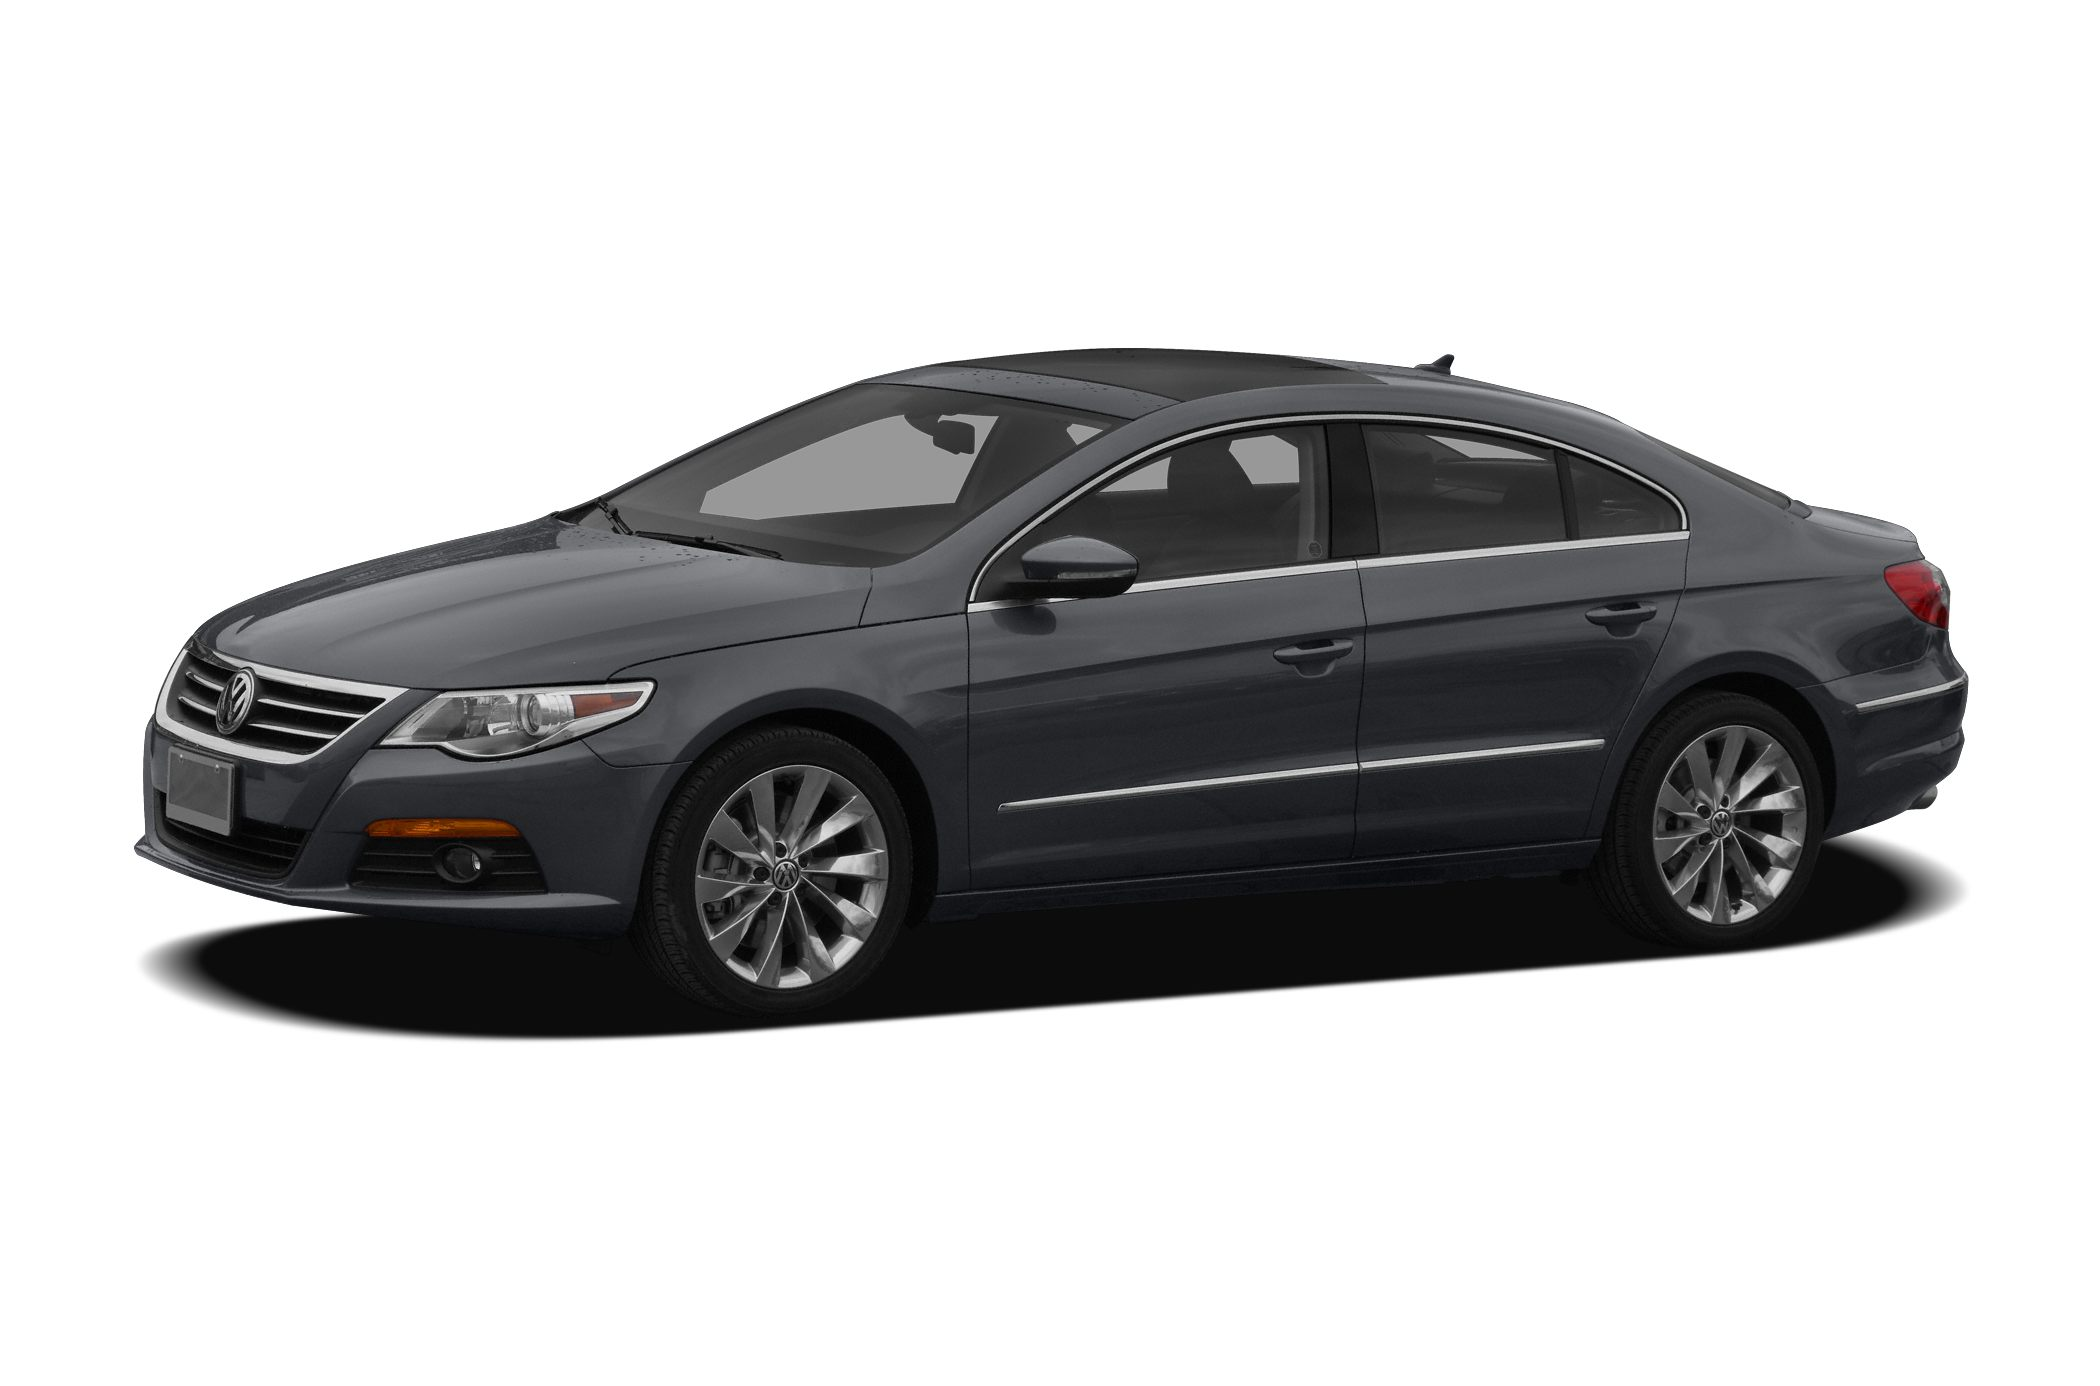 2010 Volkswagen CC Sport Sedan for sale in Annandale for $0 with 123,212 miles